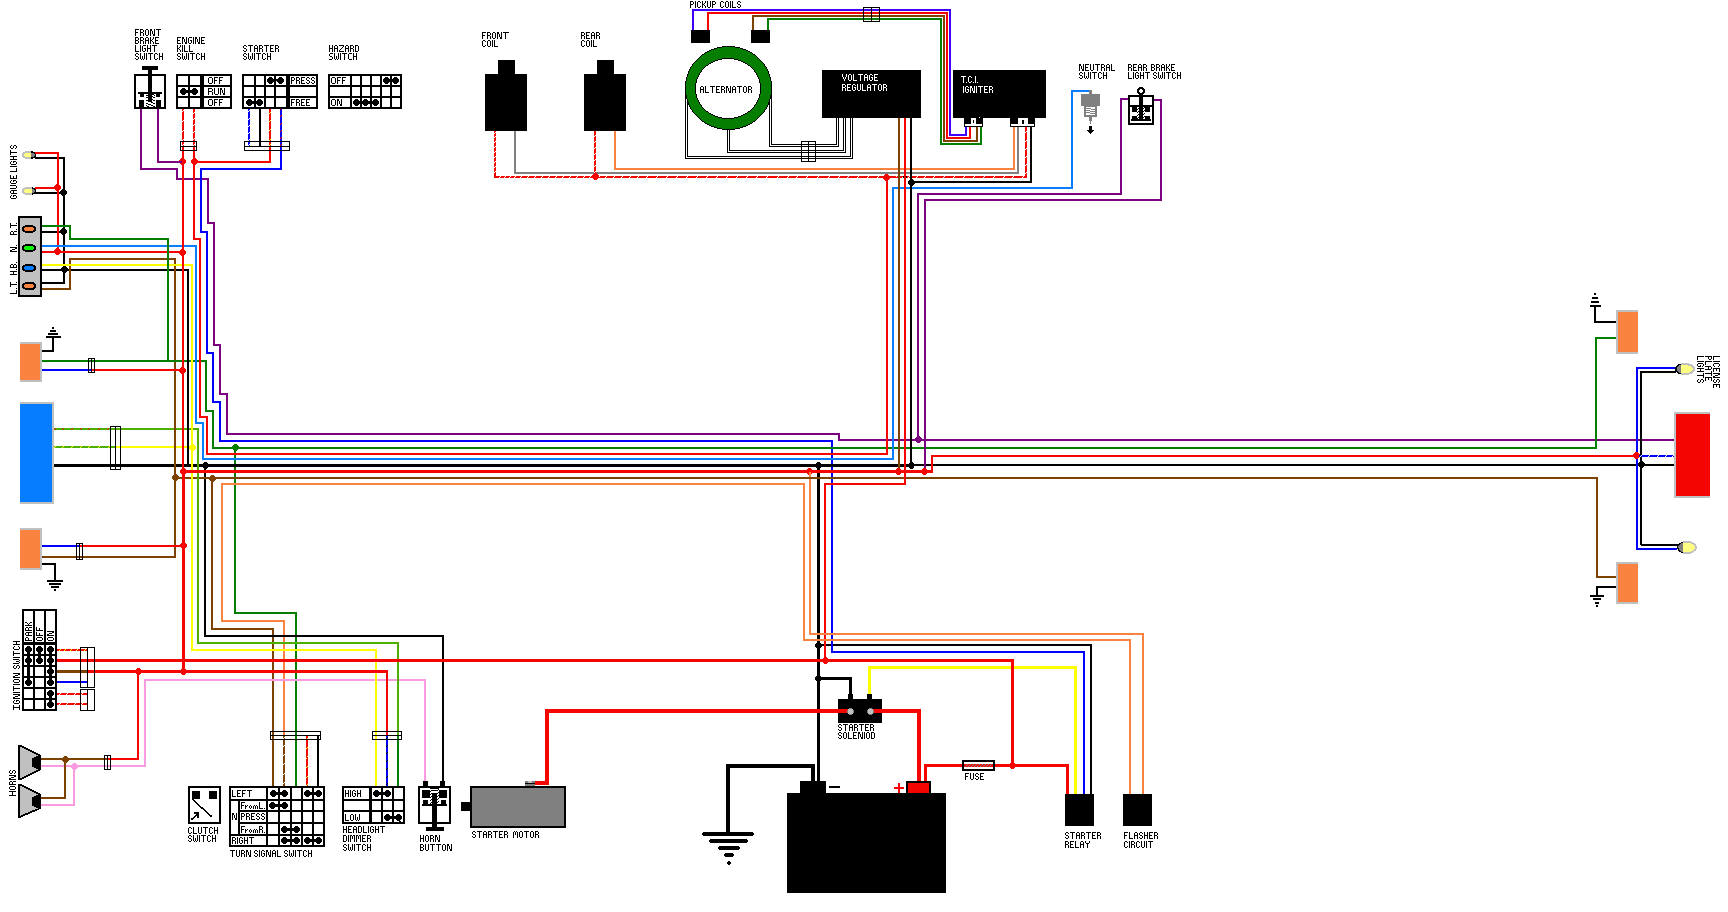 Wiring Diagrams.htm on